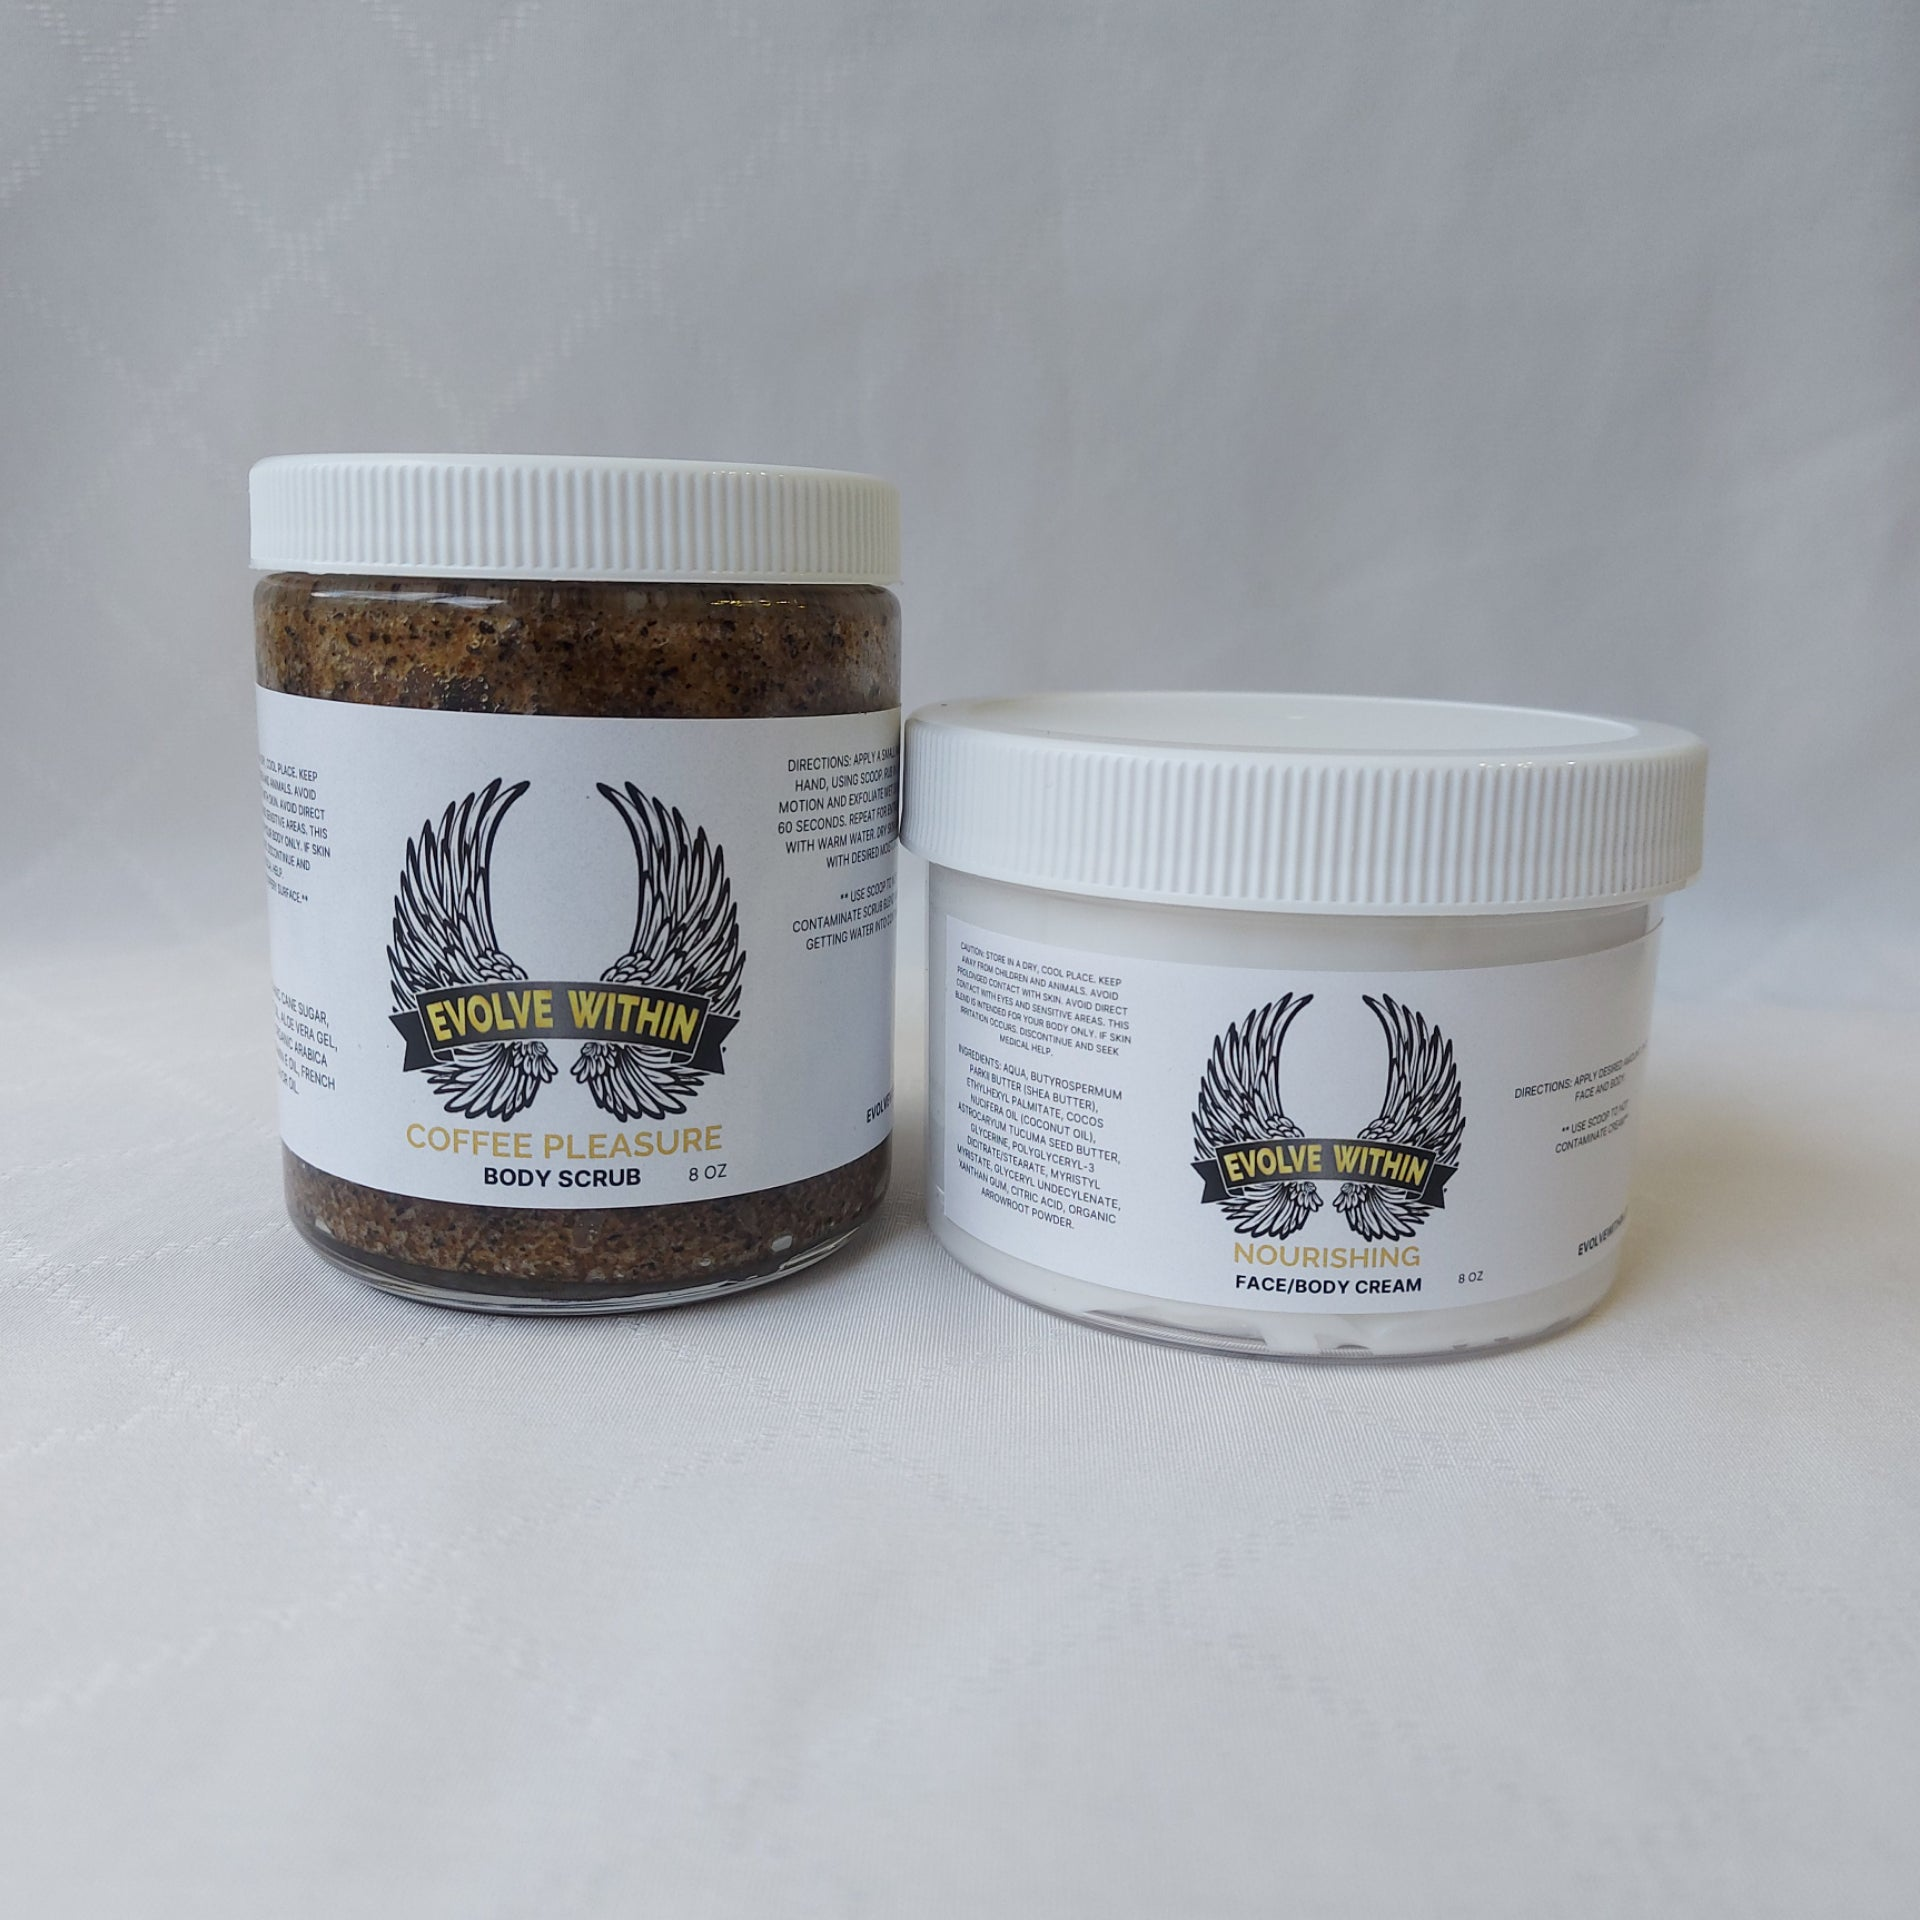 Body Scrub & Face/Body Cream Sets